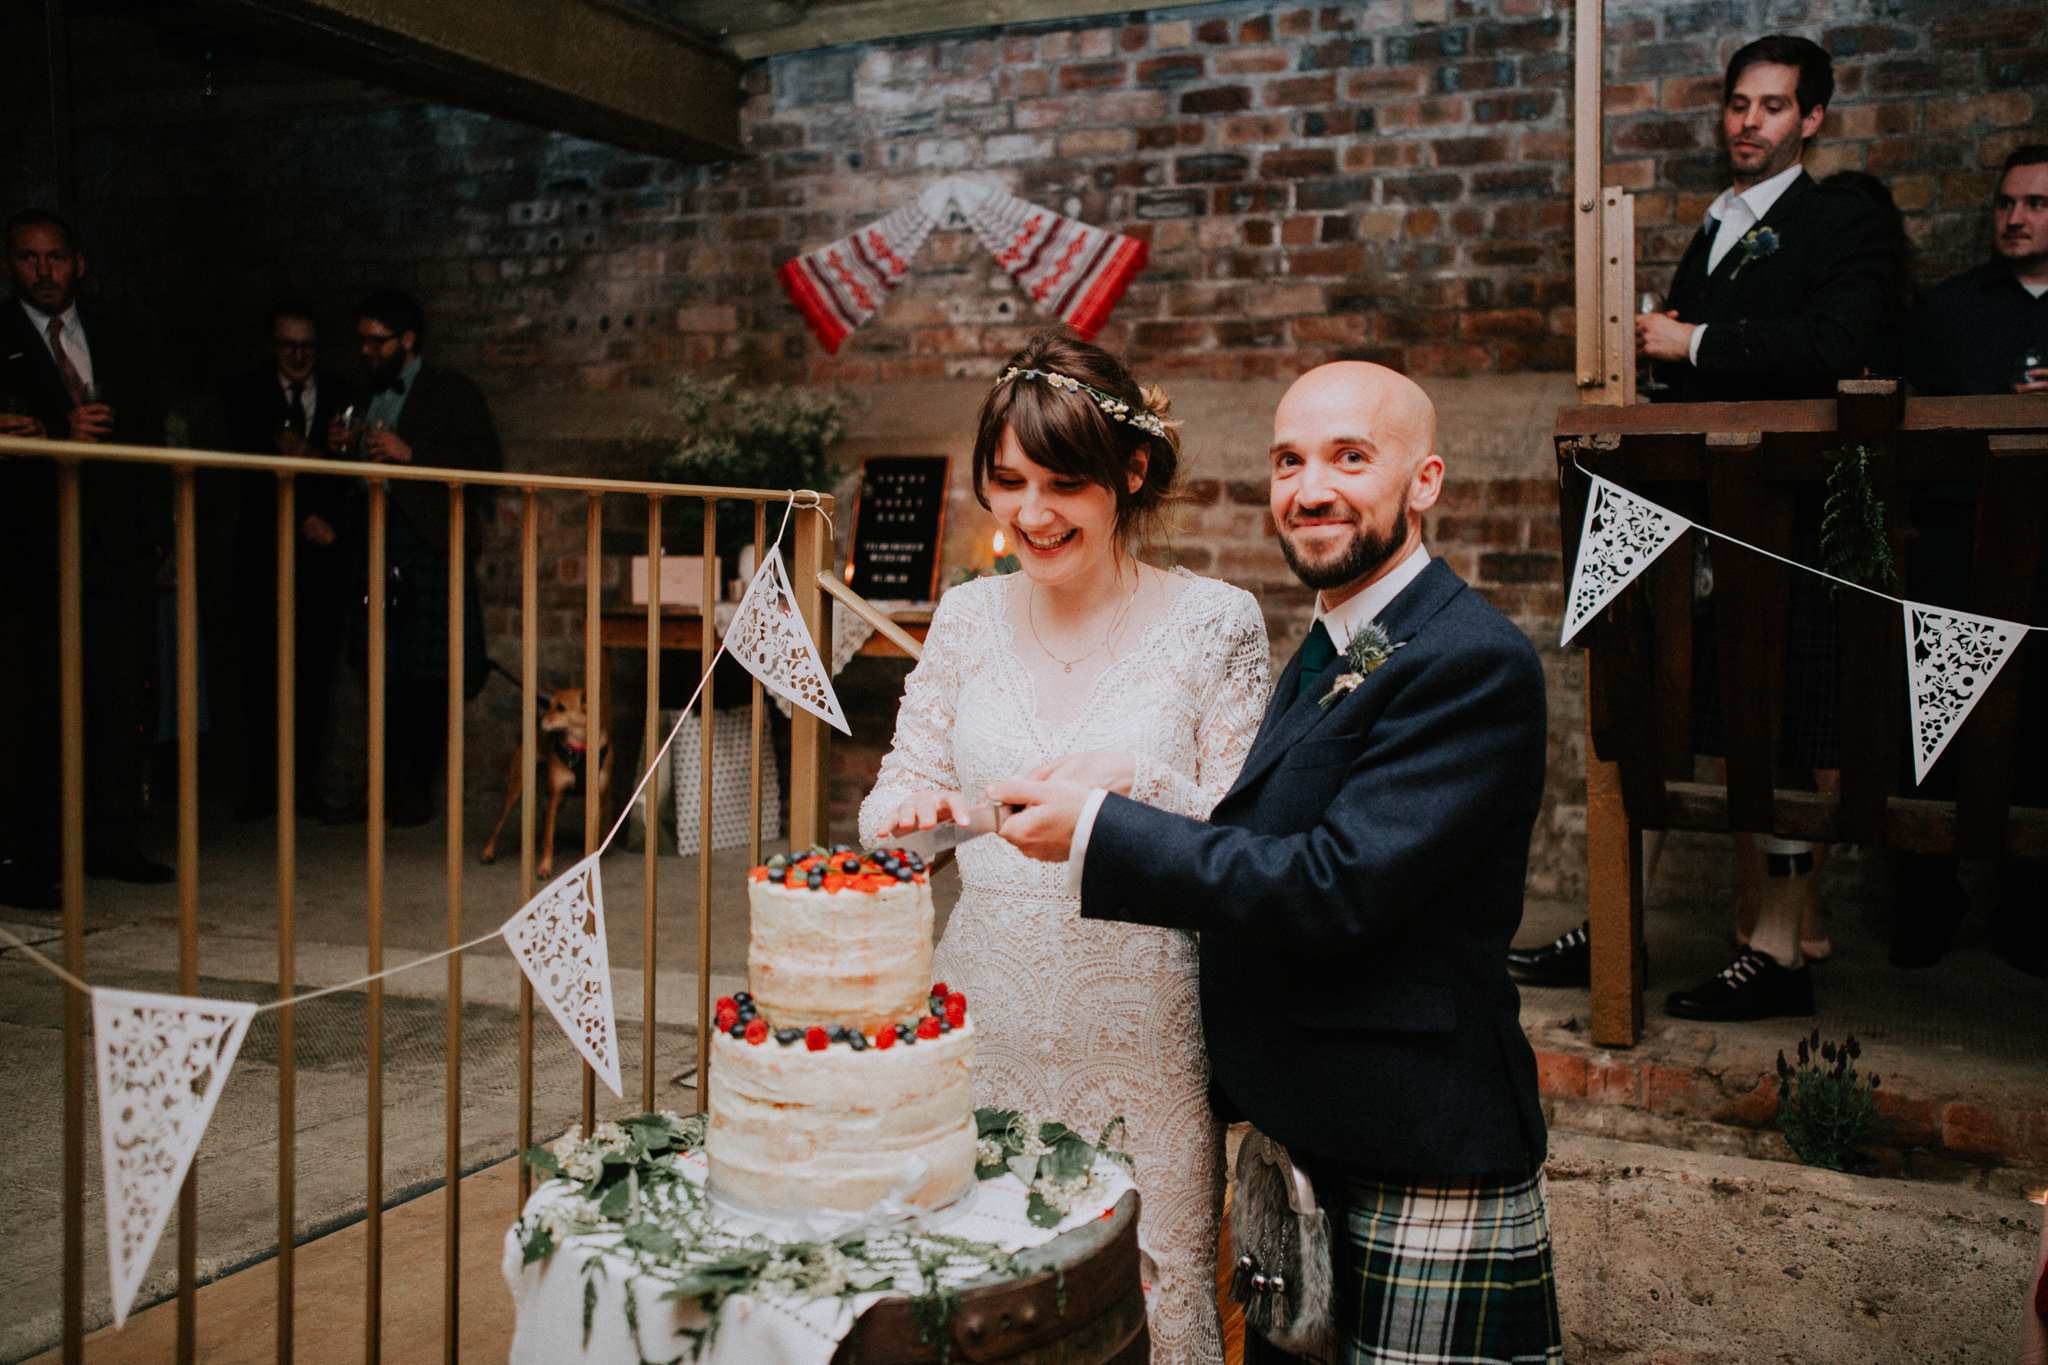 Bride and the groom are cutting the cake